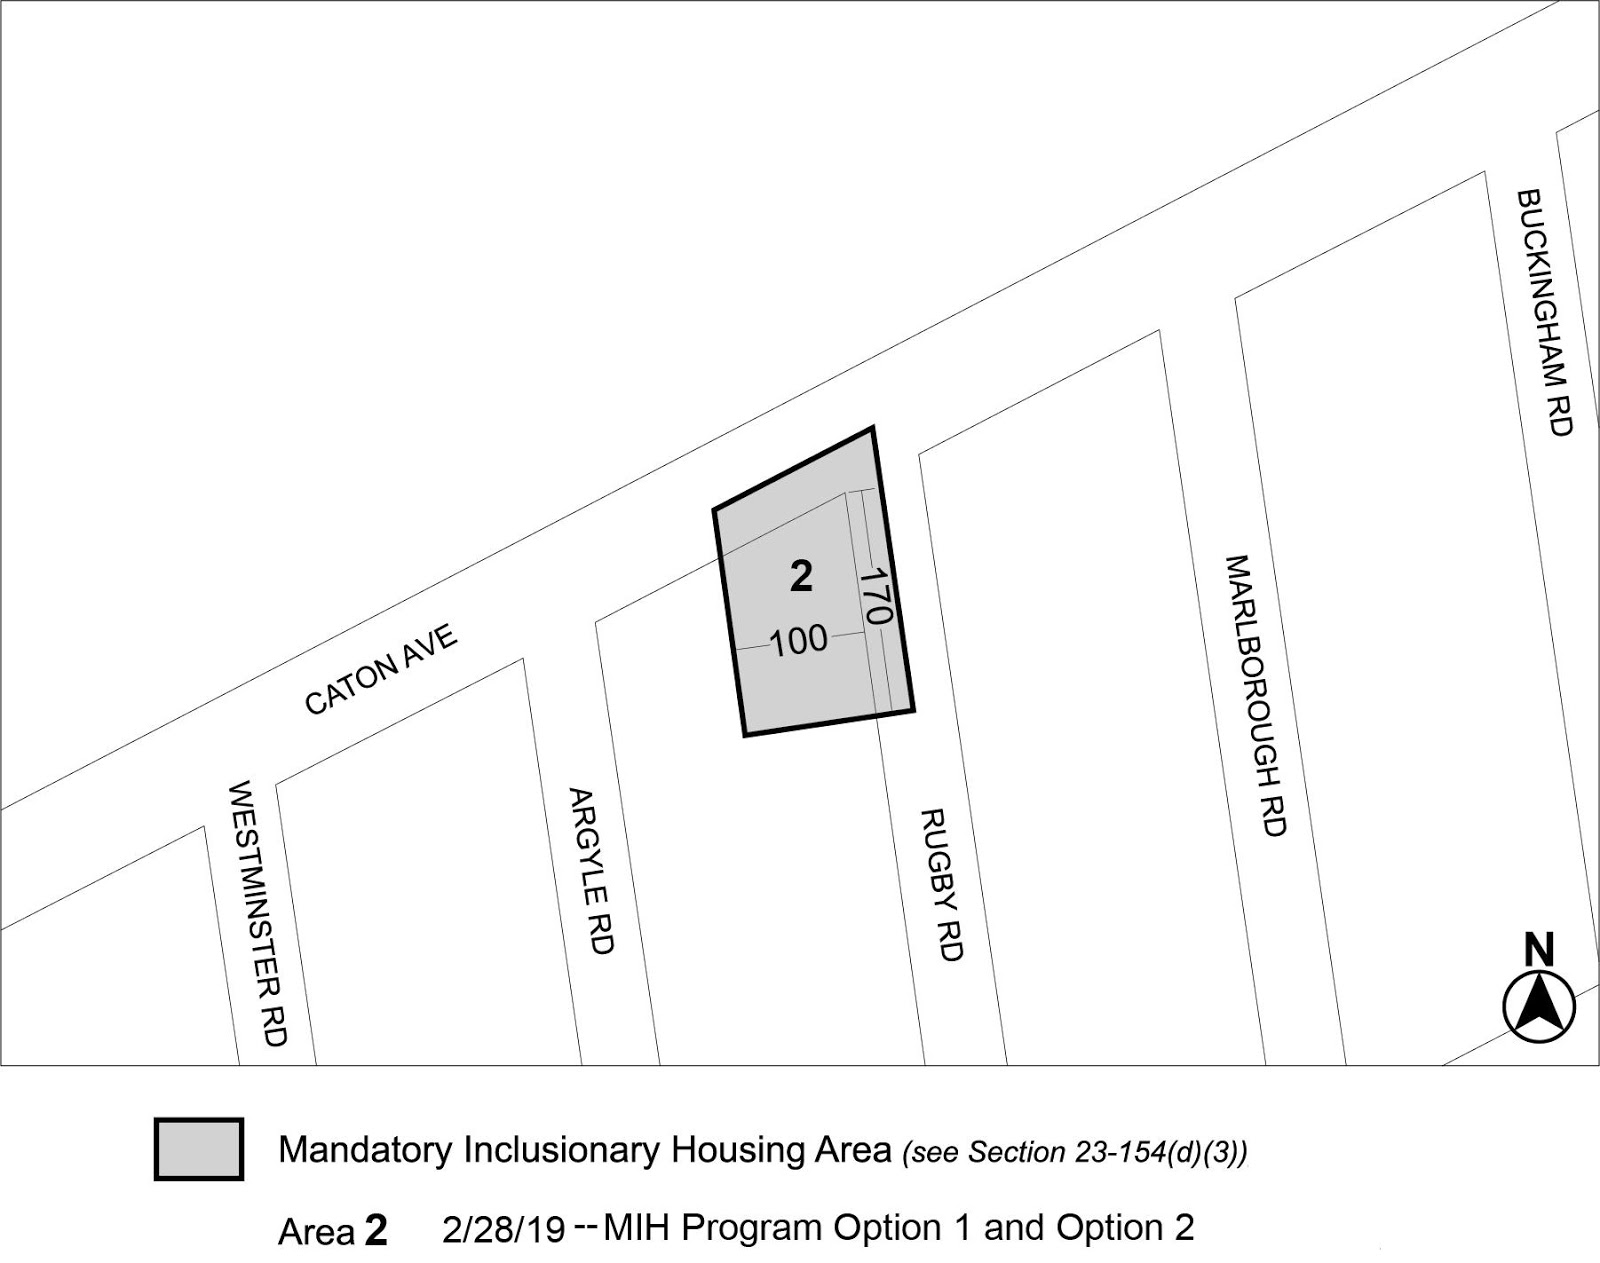 Zoning Resolutions F-Inclusionary Housing Designated Areas and Mandatory Inclusionary Housing Areas_2.76